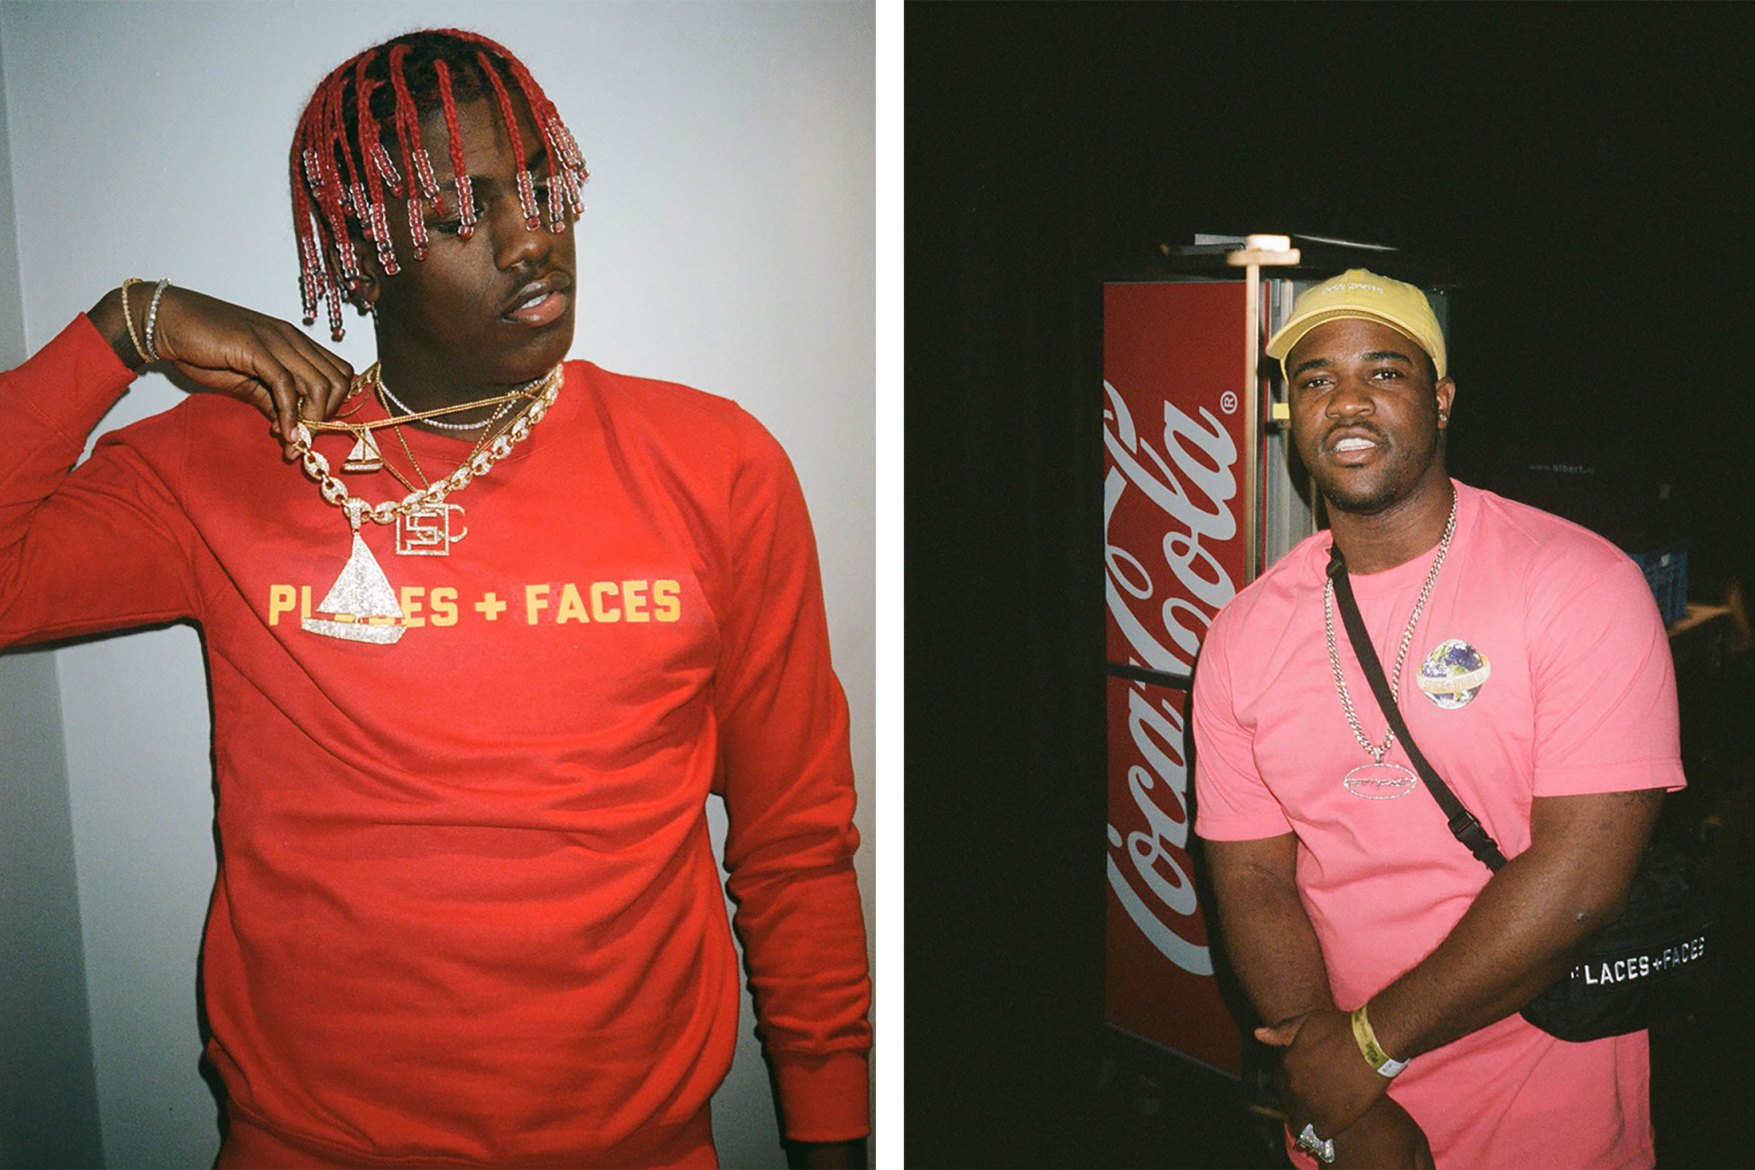 Places+Faces A$AP Ferg x Lil Yatchy - TRENDS periodical